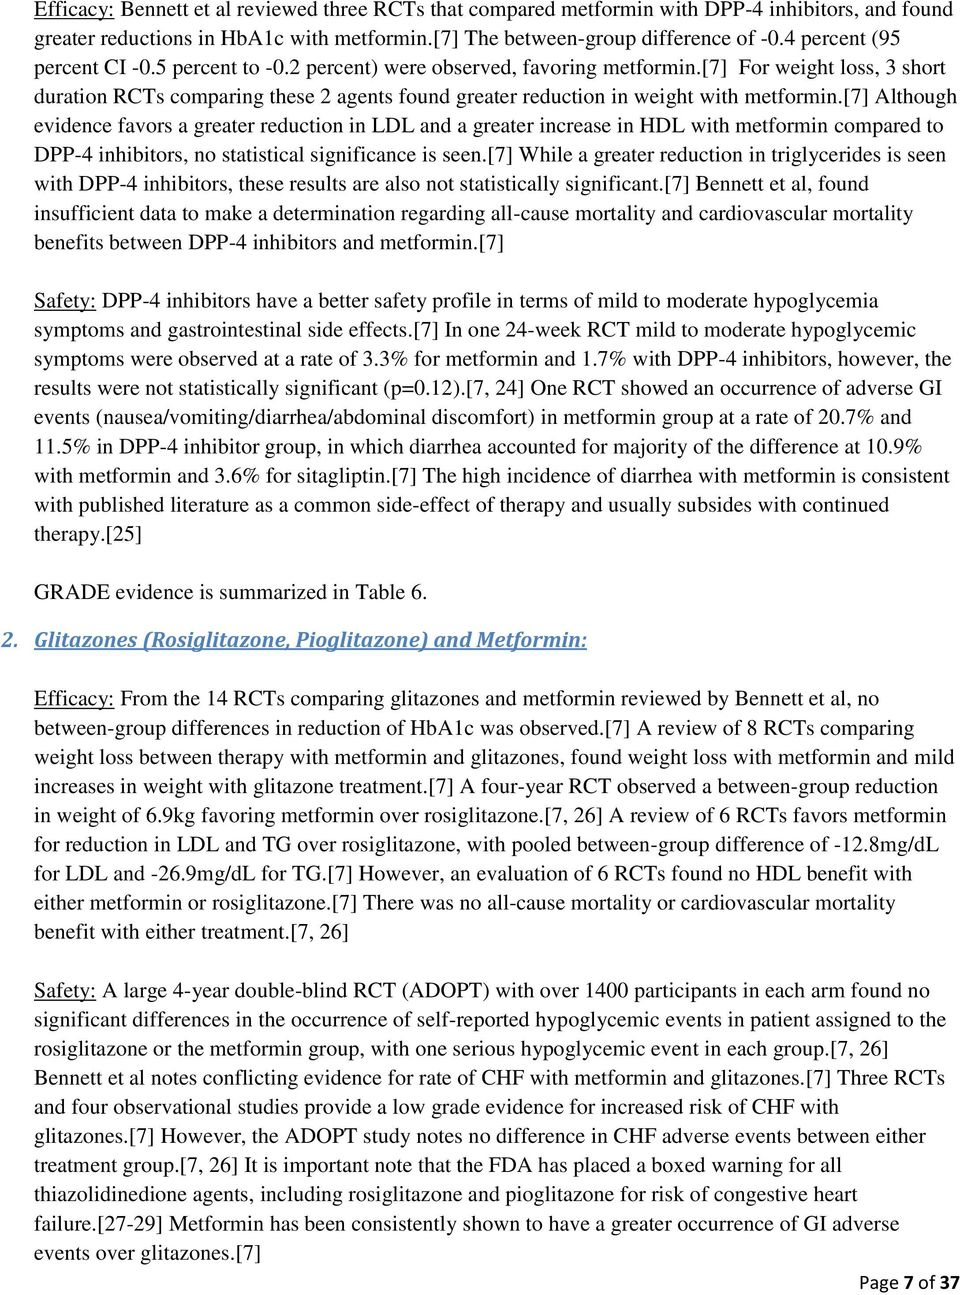 [7] For weight loss, 3 short duration RCTs comparing these 2 agents found greater reduction in weight with metformin.